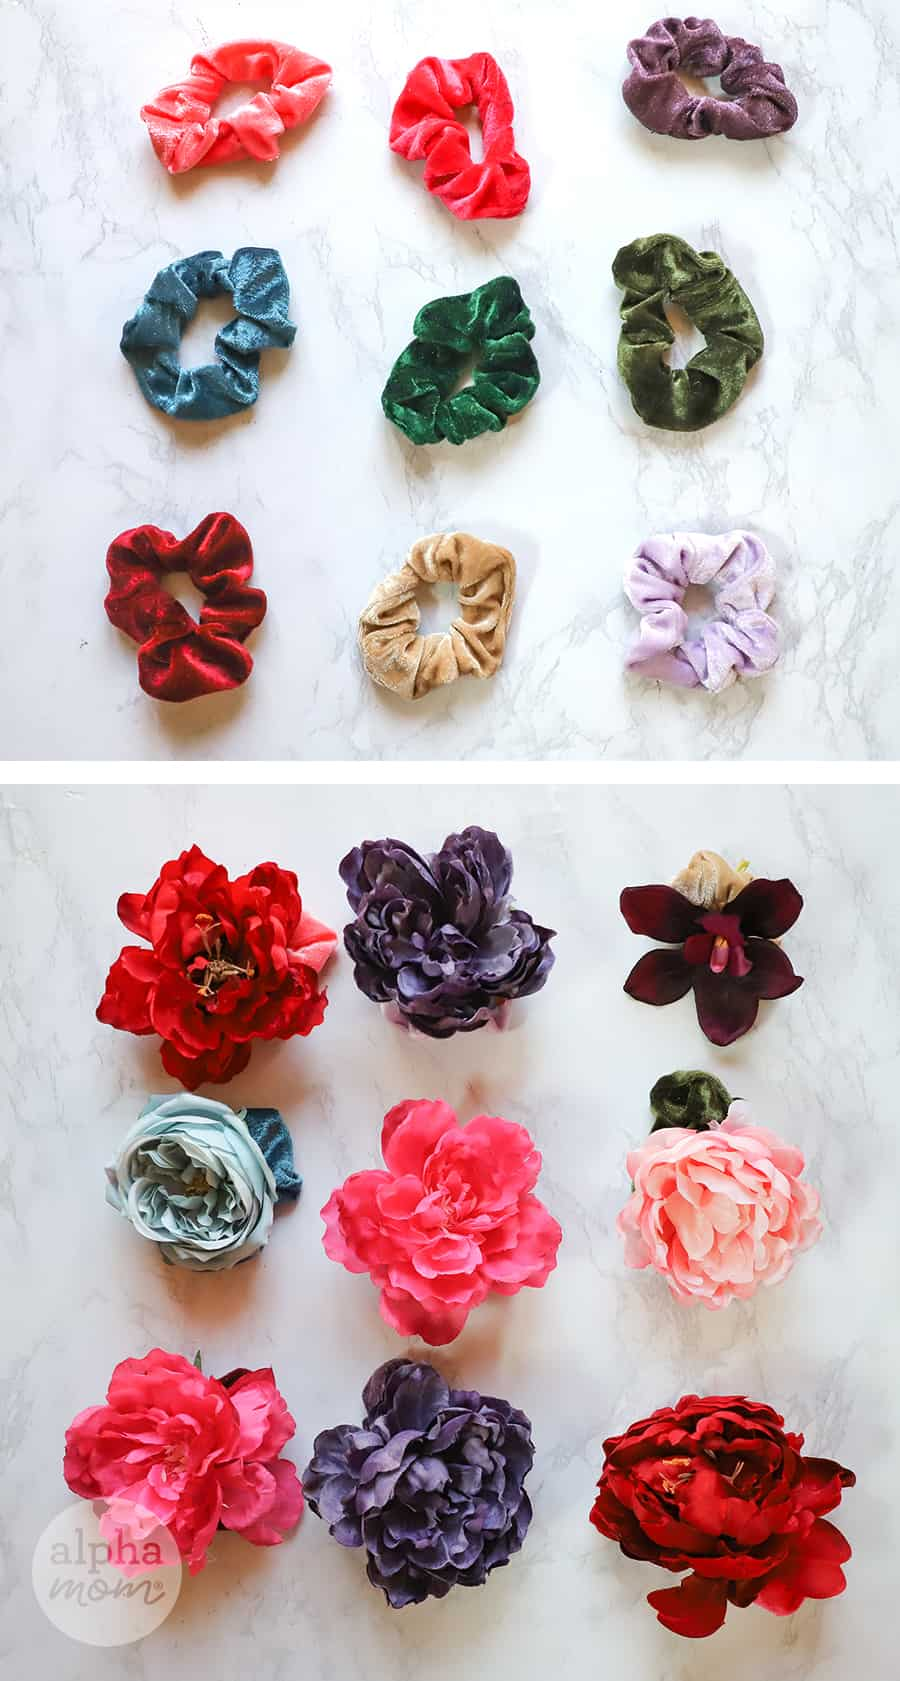 two pictures with top picture showing nine jewel-toned velvet scrunchies and bottom photo showing faux-flowers to add to them